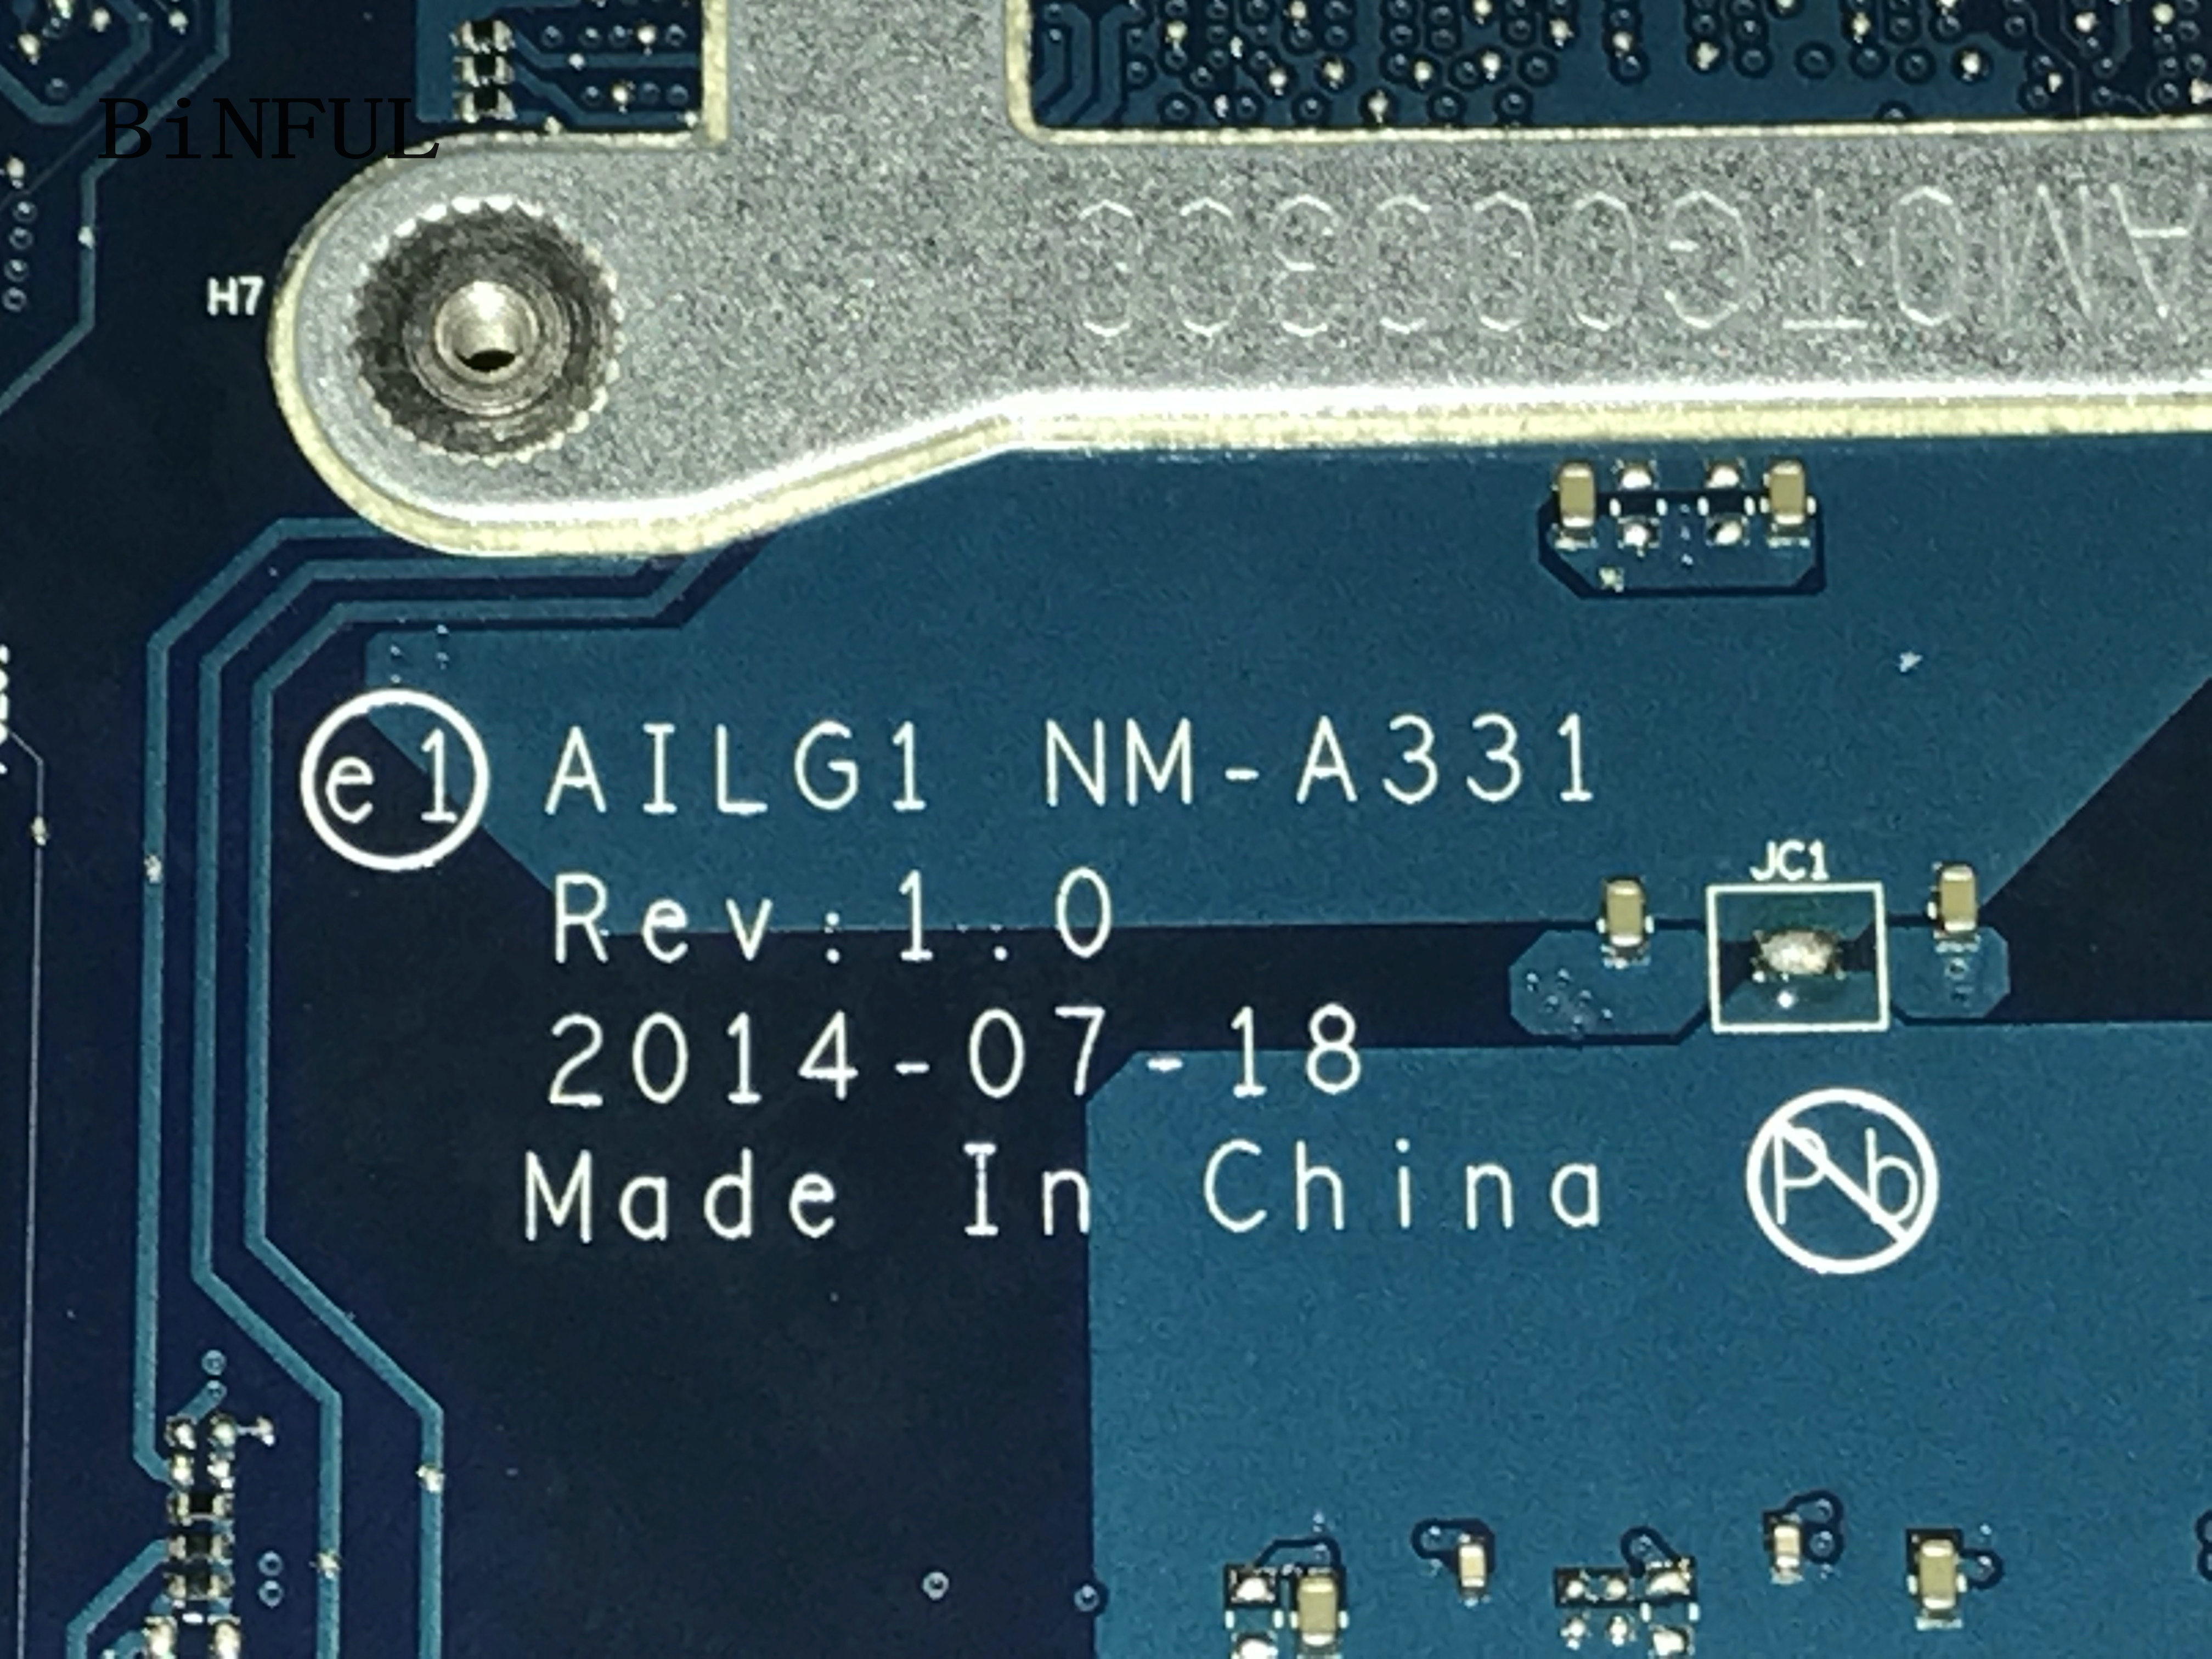 BiNFUL 100% NEW AILG1 NM-A331FOR LENOVO G70-80 / G70-70 LAPTOP MOTHERBOARD BUILD-IN VIDEO CARD+PROCESSOR 3825U (fit i3 i5 i7 )BiNFUL 100% NEW AILG1 NM-A331FOR LENOVO G70-80 / G70-70 LAPTOP MOTHERBOARD BUILD-IN VIDEO CARD+PROCESSOR 3825U (fit i3 i5 i7 )